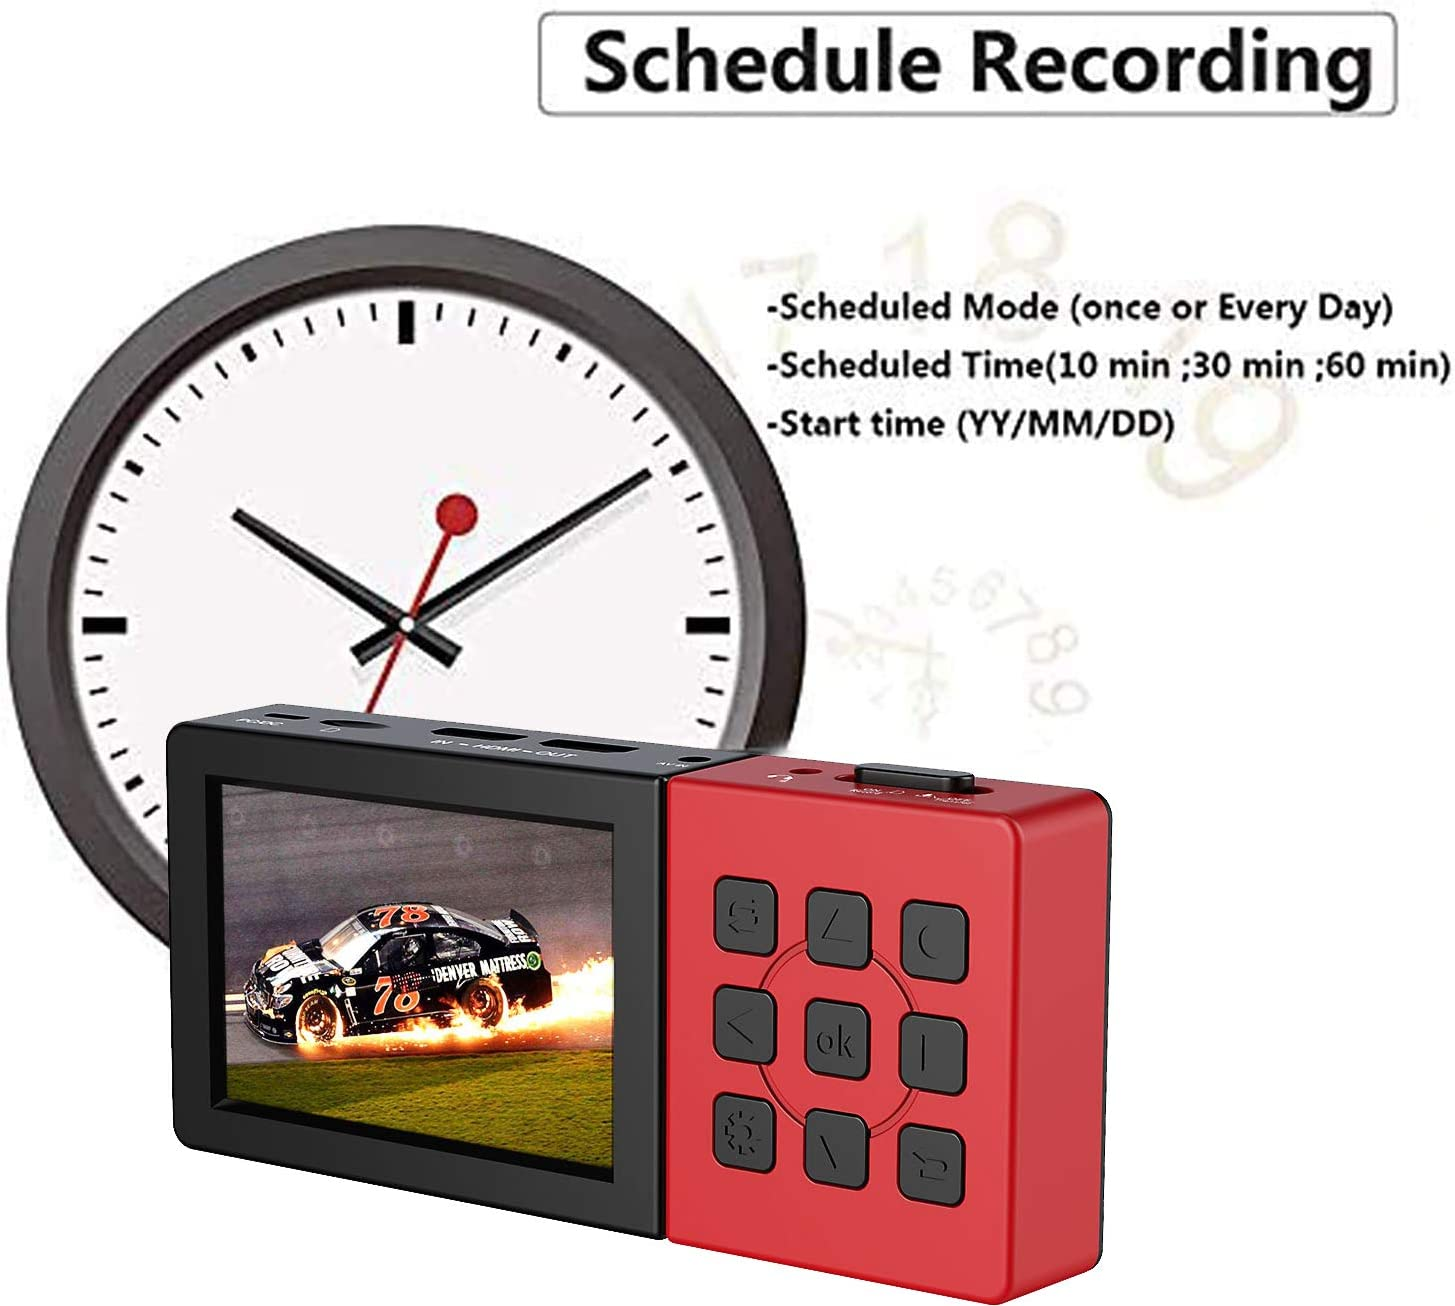 Y/&H HD Game Recorder Pro Without PC Standalone Capture Schedule Capturing AV Recording 1080P 60fps Video Recorder HDMI Video Capture Device with 3.5 Inch LCD,Video Playback Mic for Narration